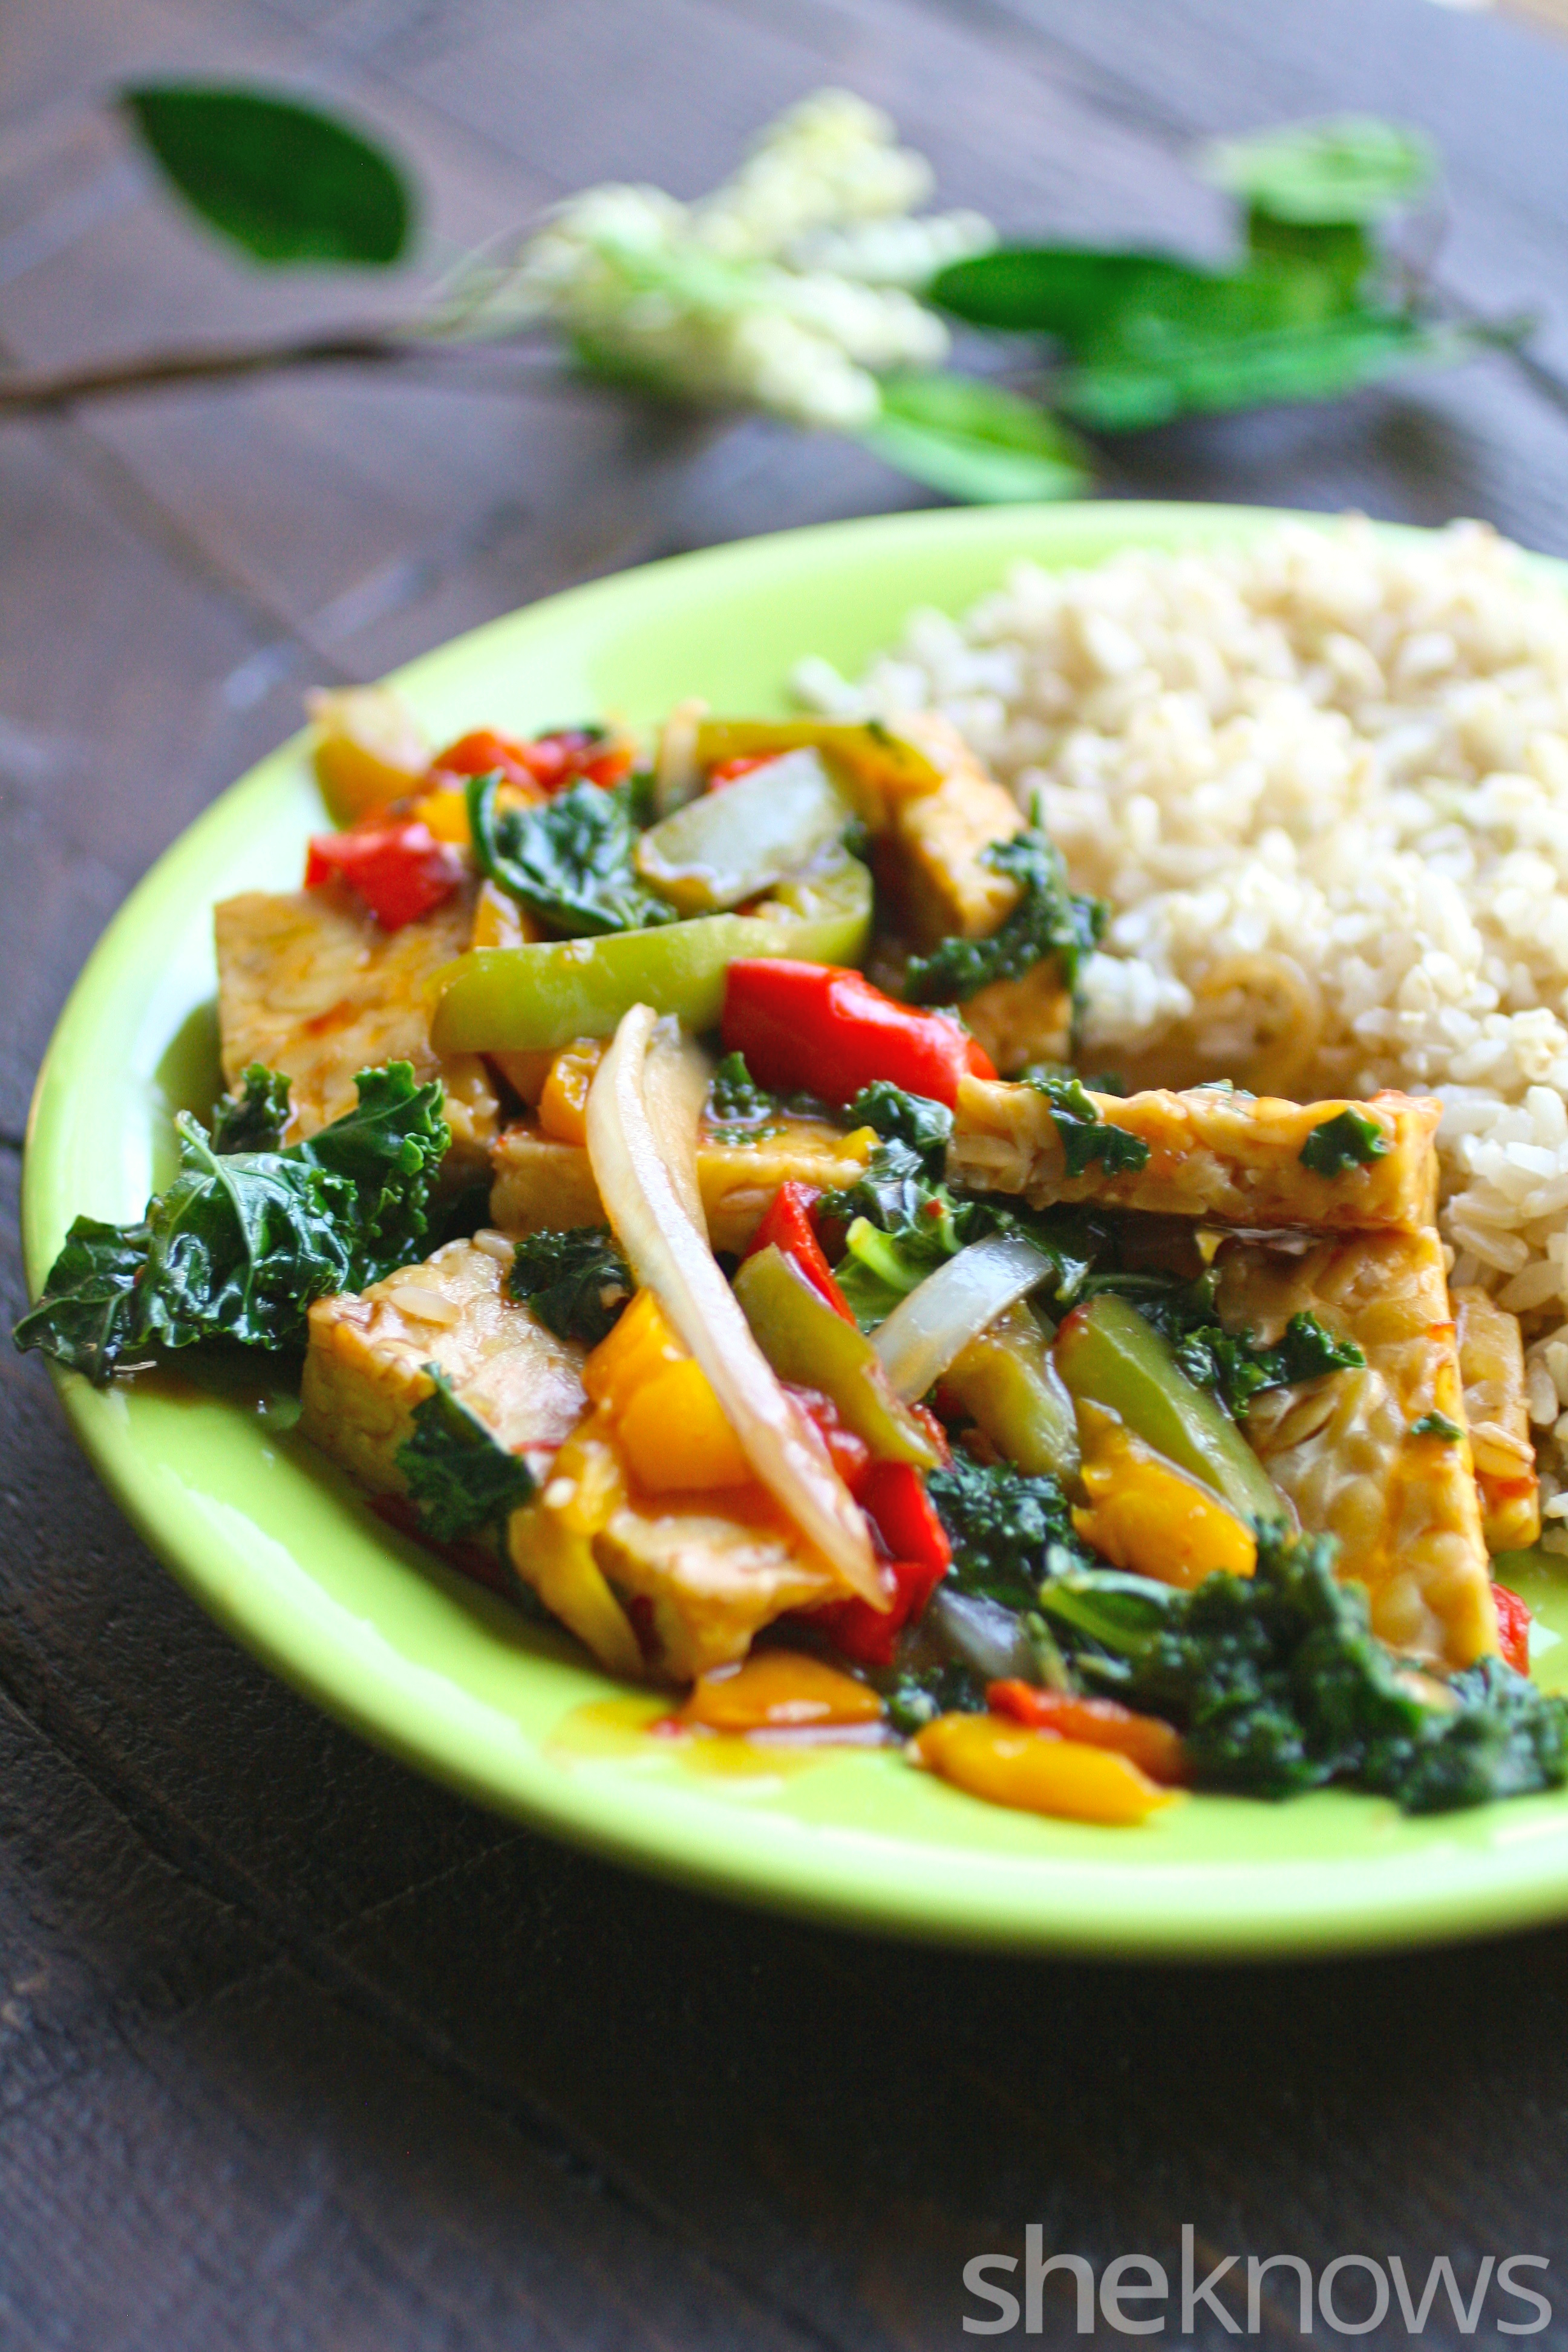 A plate of Szechuan vegetables and tempeh stir-fry with brown rice makes a quick and tasty meal.